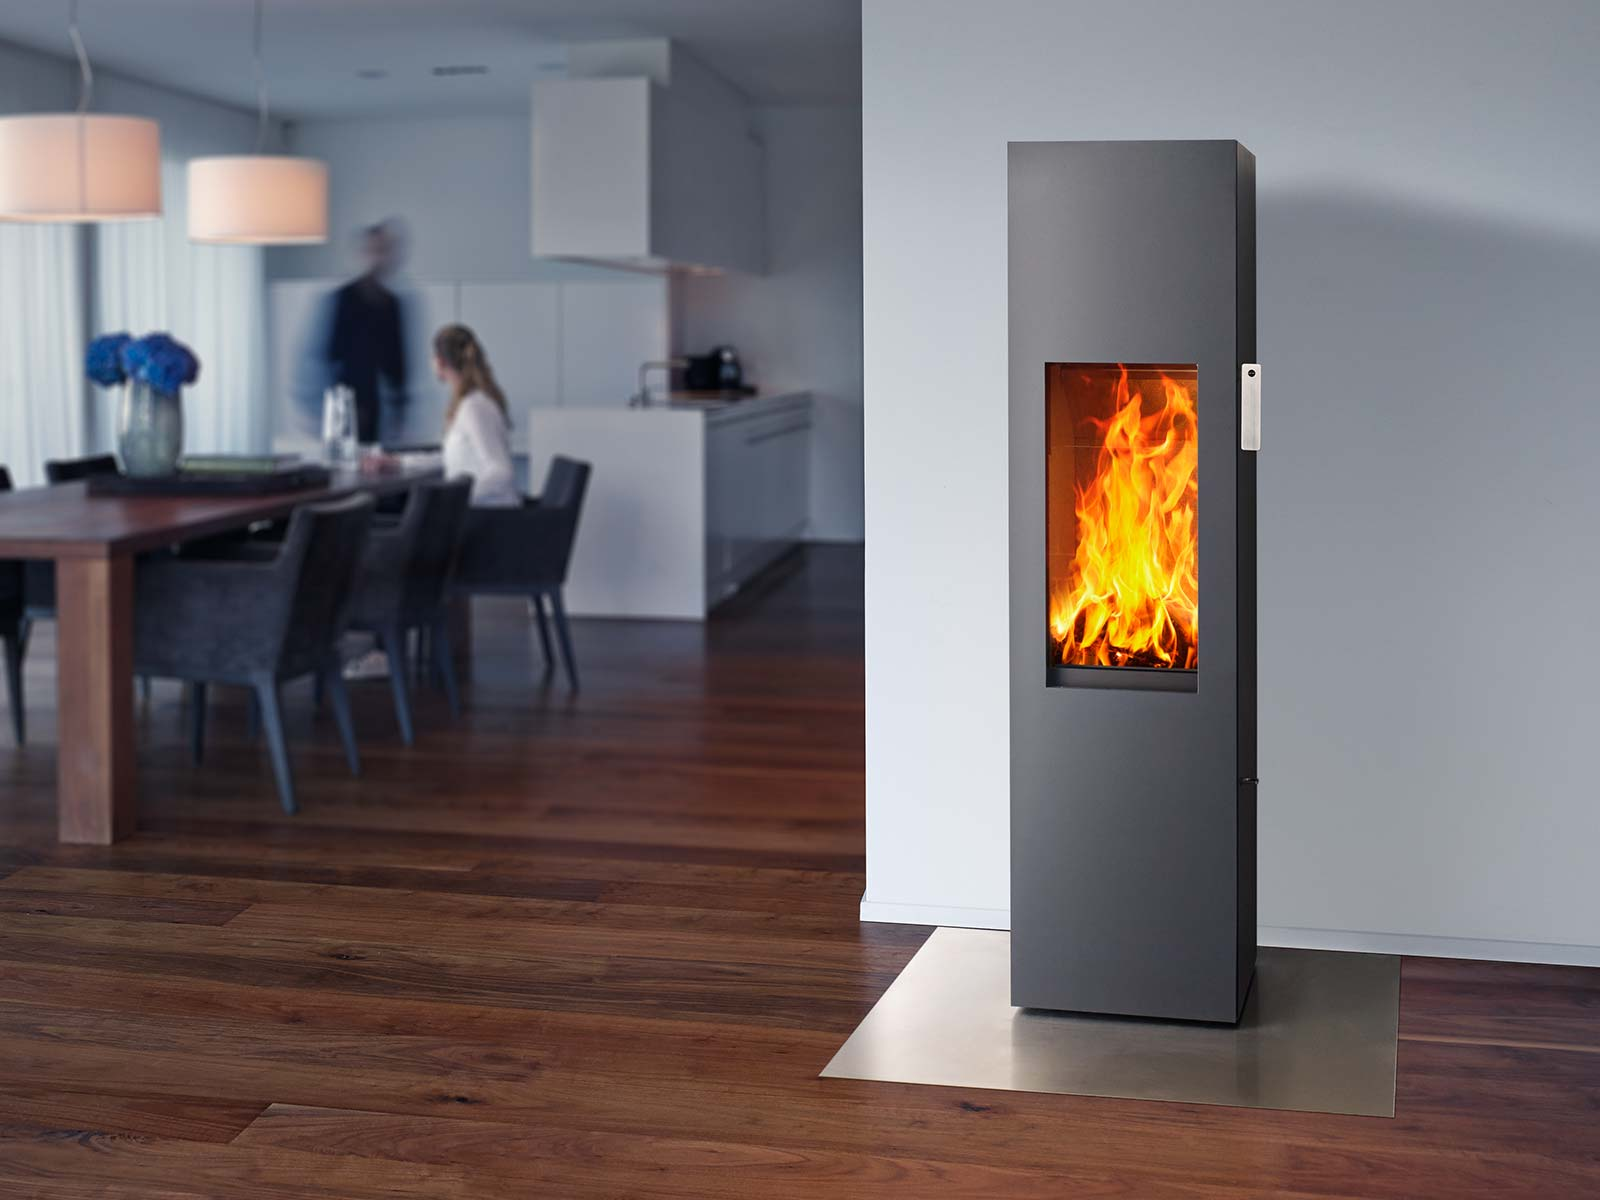 Kaminofen Englisch Attika Blog Useful Information About The Stove And Fireplaces